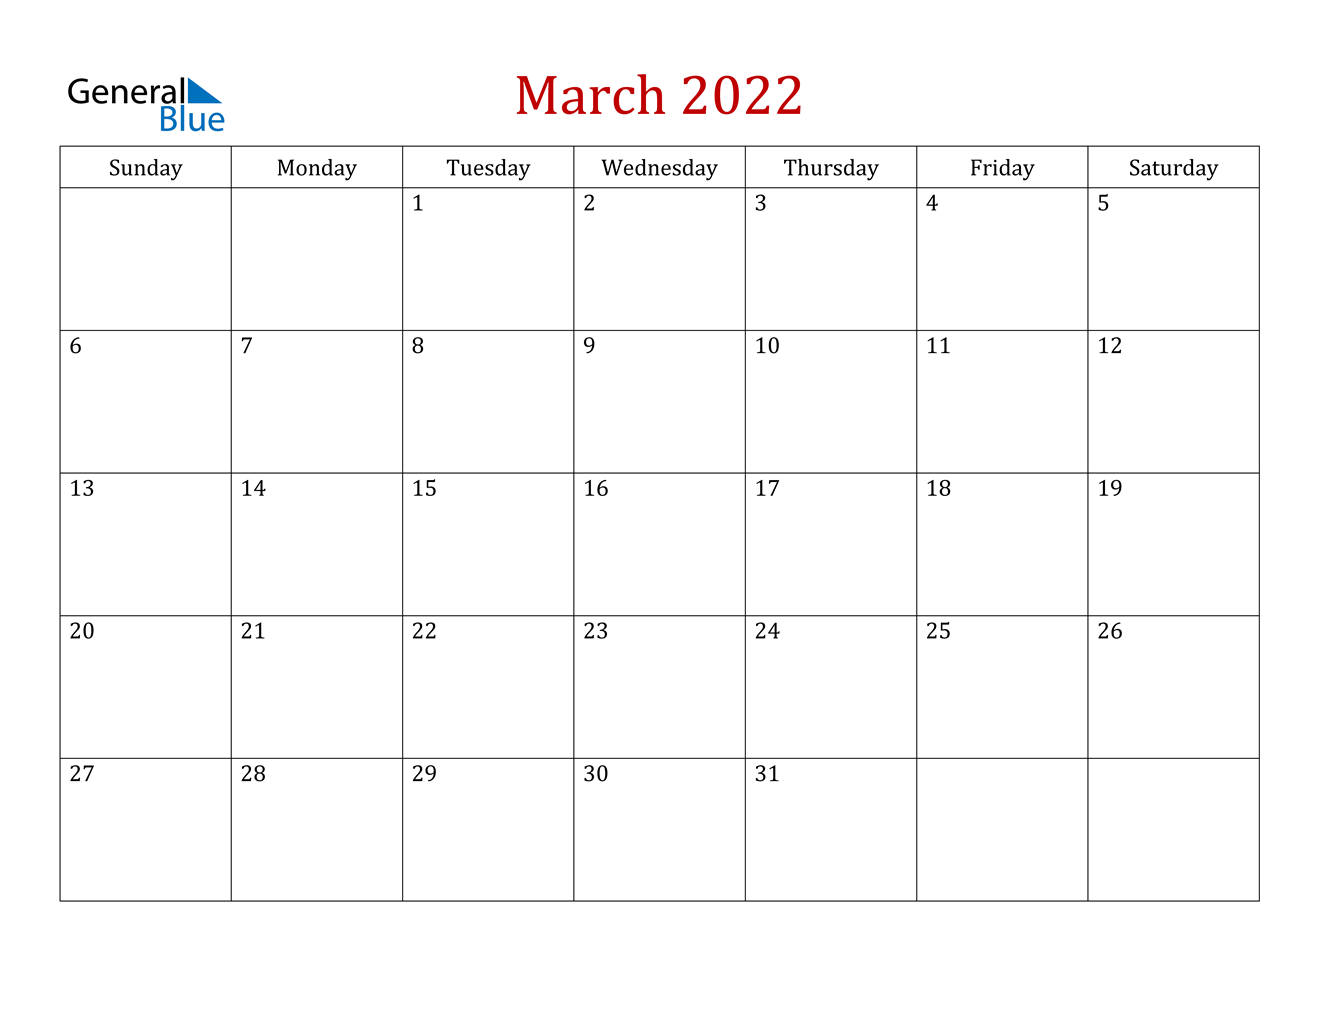 March 2022 Calendar (Pdf Word Excel) intended for Calendar For March 2022